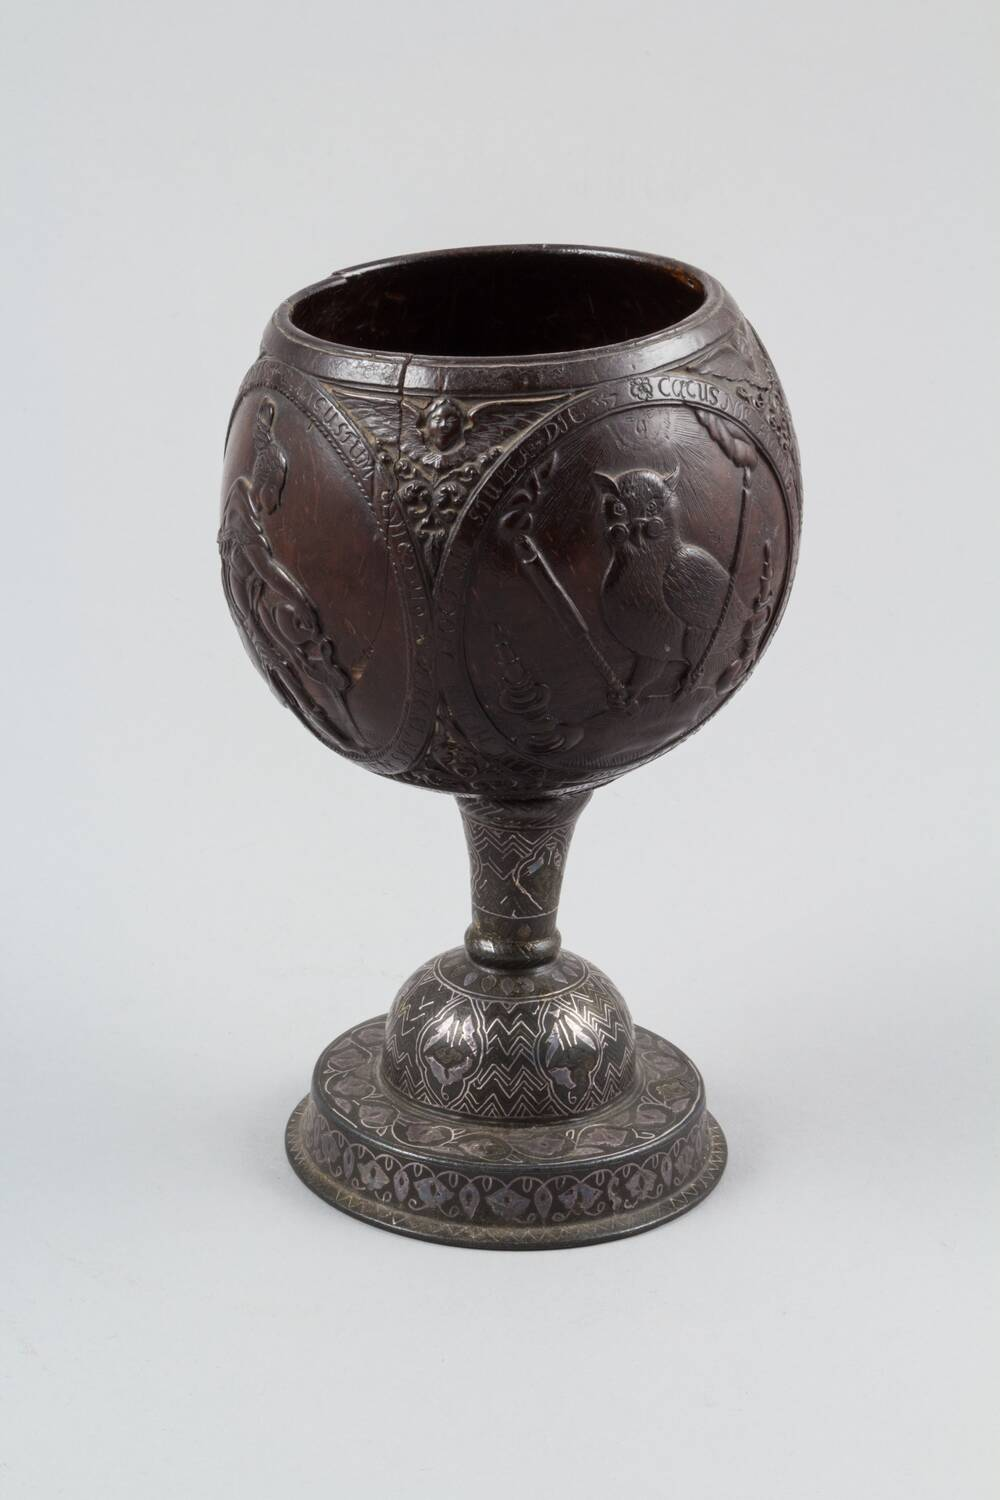 A dark, wooden goblet is displayed against a plain grey background. The top is carved from a coconut shell and has a number of etched illustrations upon it, including an owl. The stem and base have white patterns carved onto them.